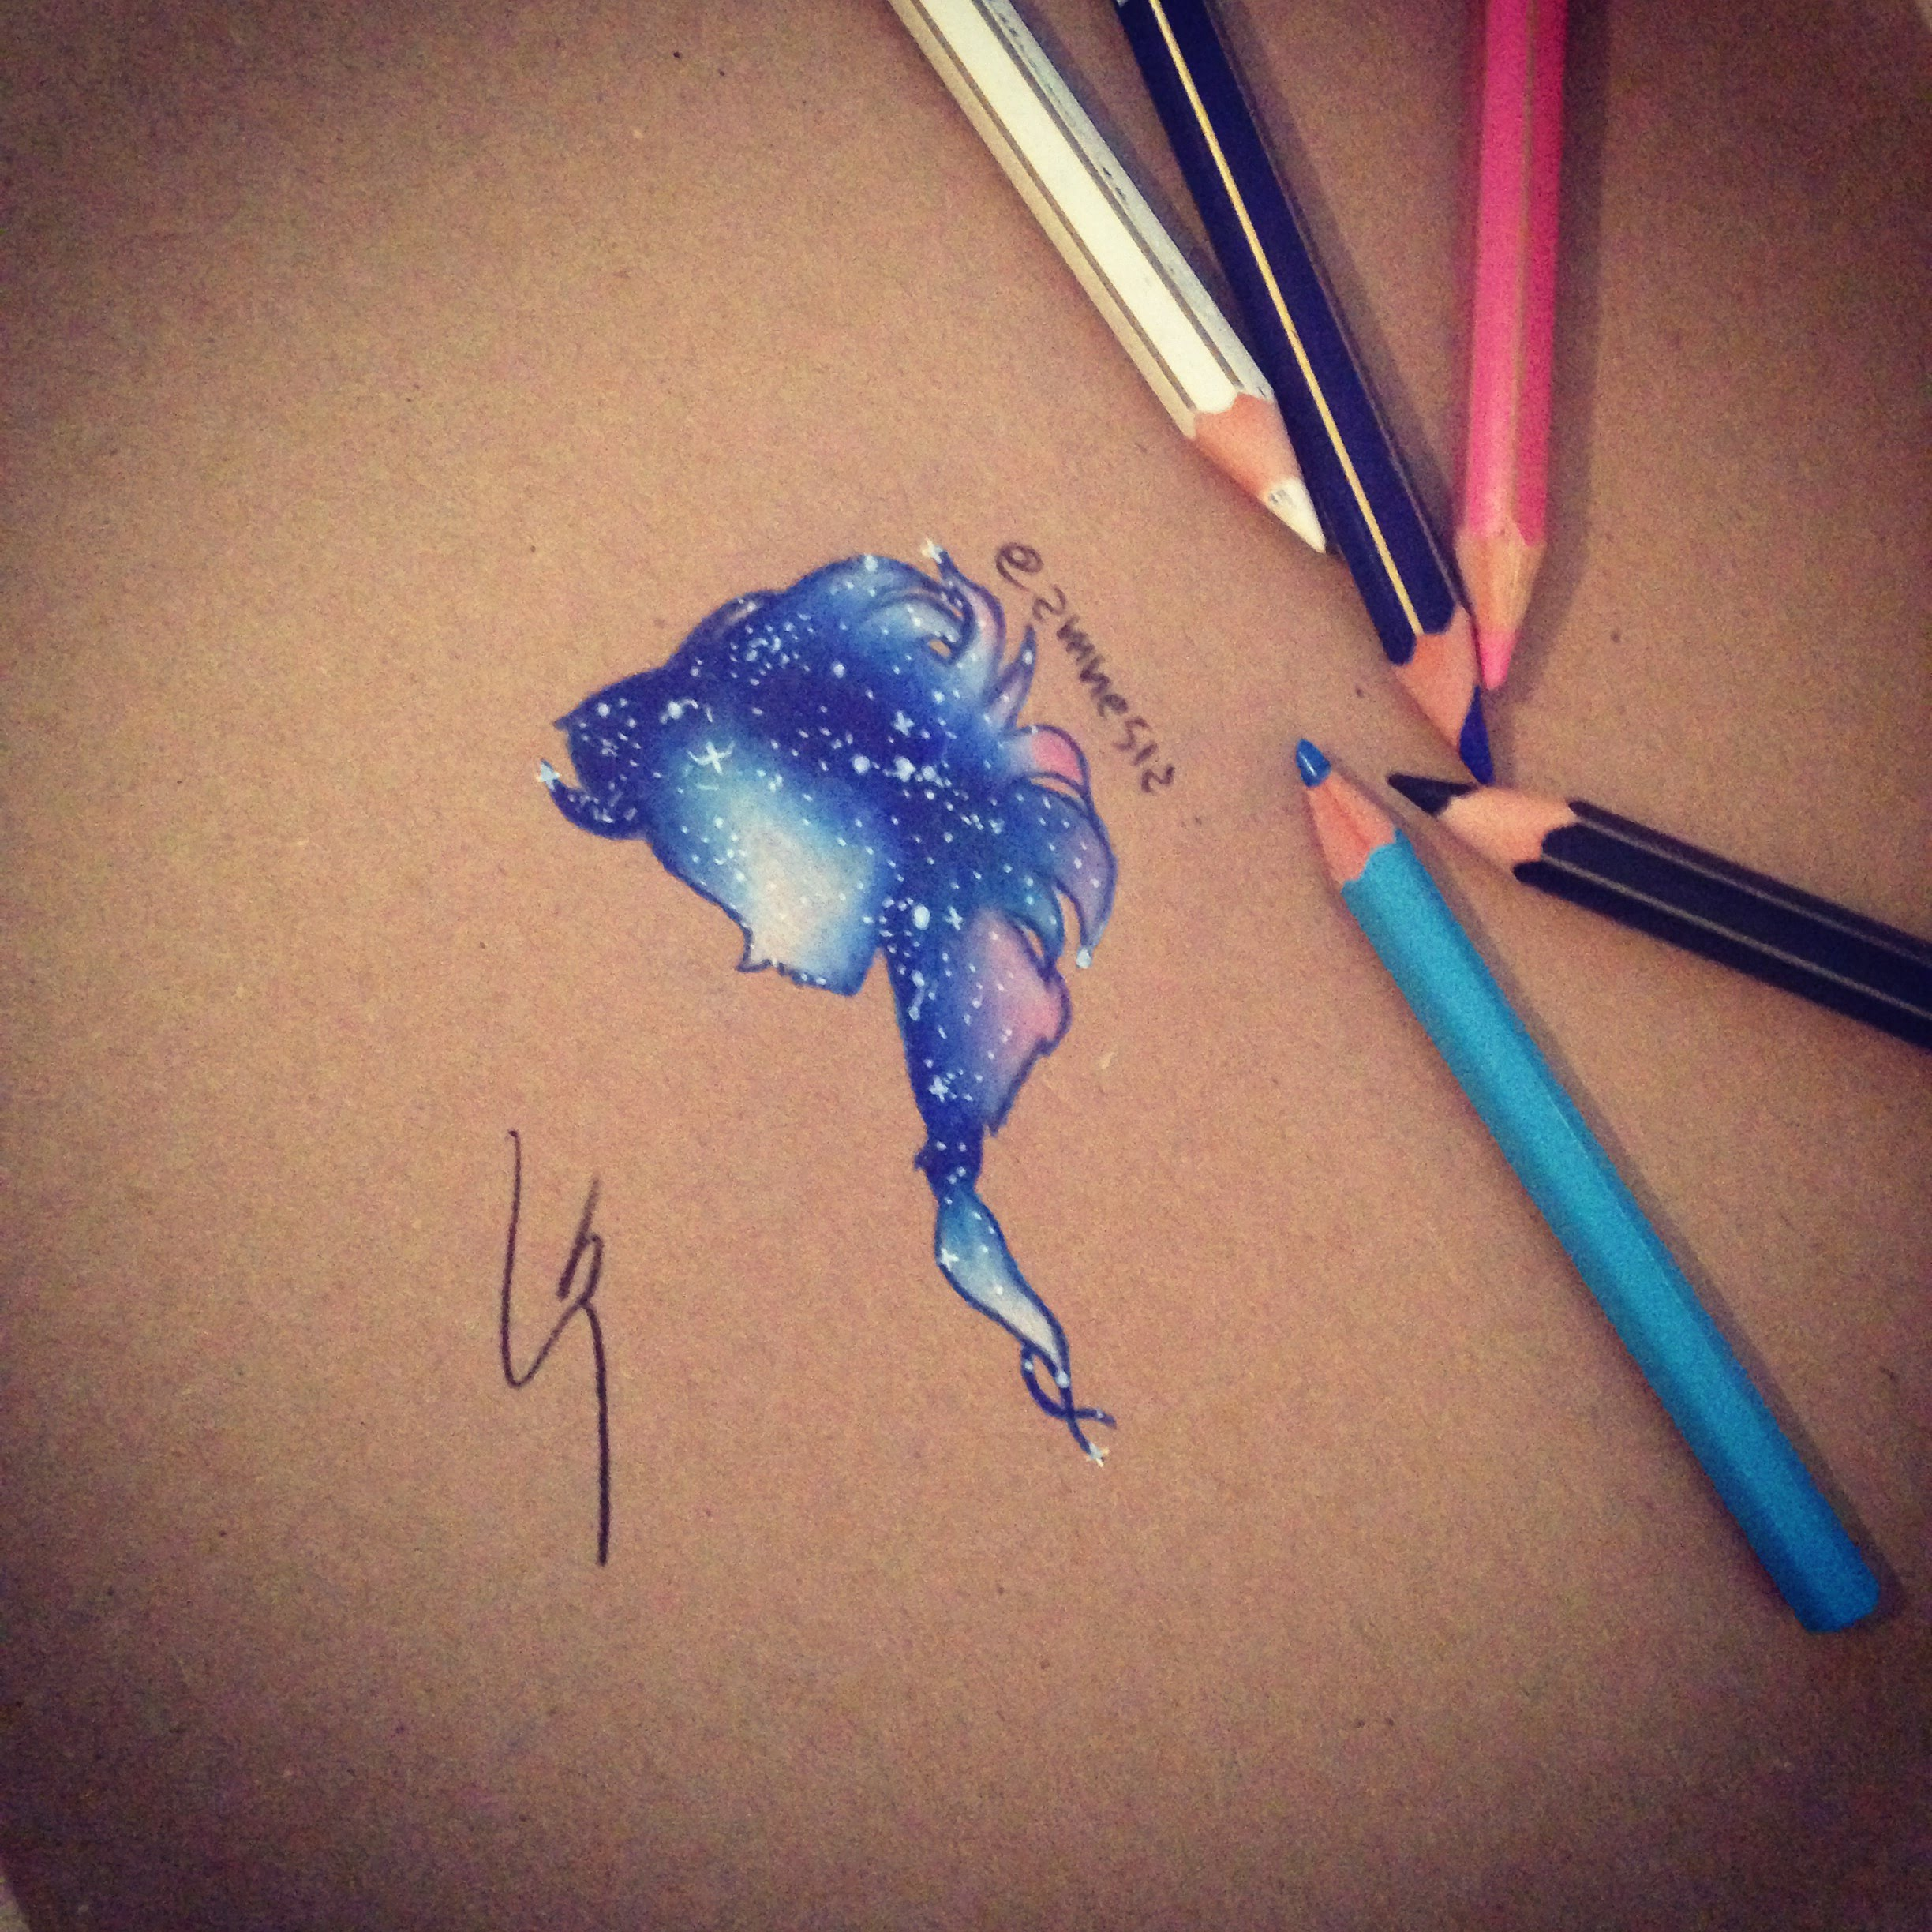 2448x2448 How To Draw Galaxy Elsa With Colored Pencil! By Sgalia Giuseppe